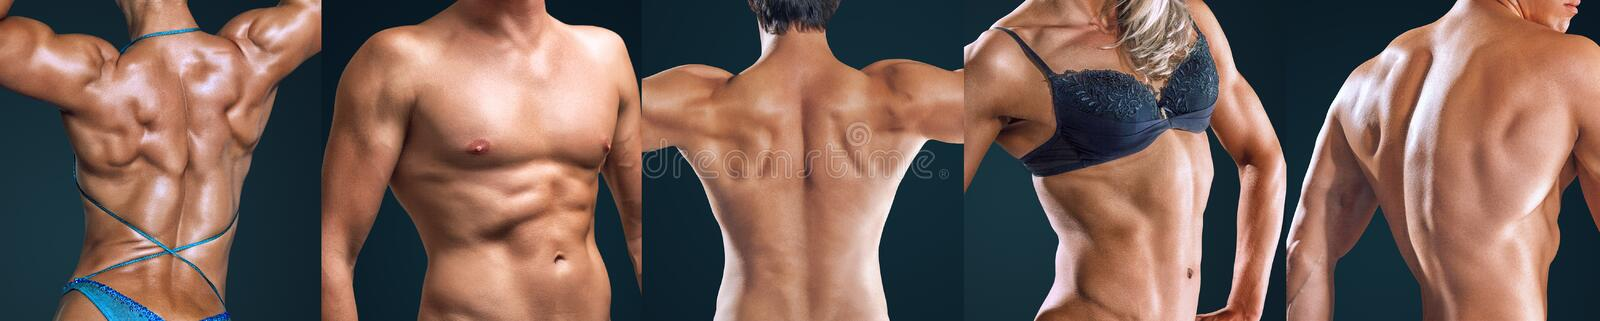 Collage of athlete people torso close-up stock photography